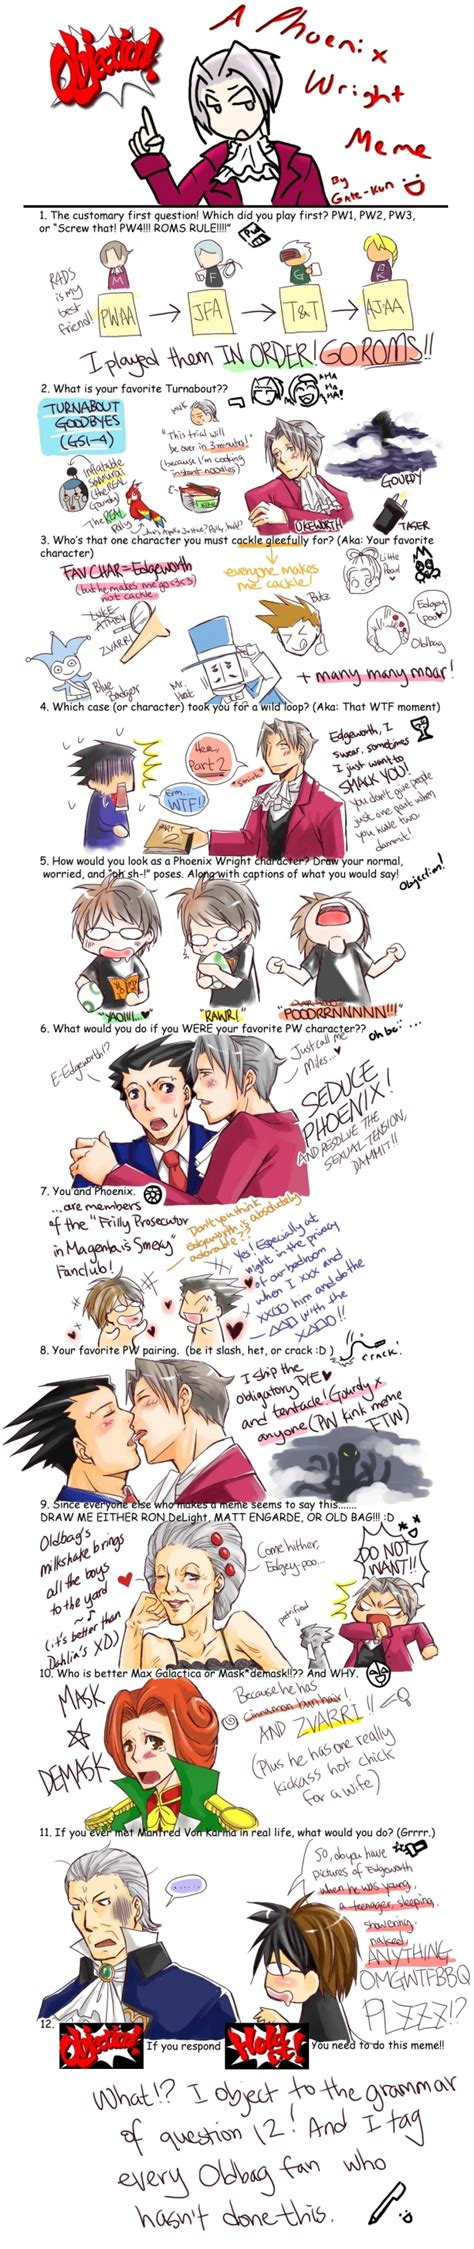 Phoenix Wright Kink Meme - phoenix wright meme 2 by cannedebonbon on deviantart